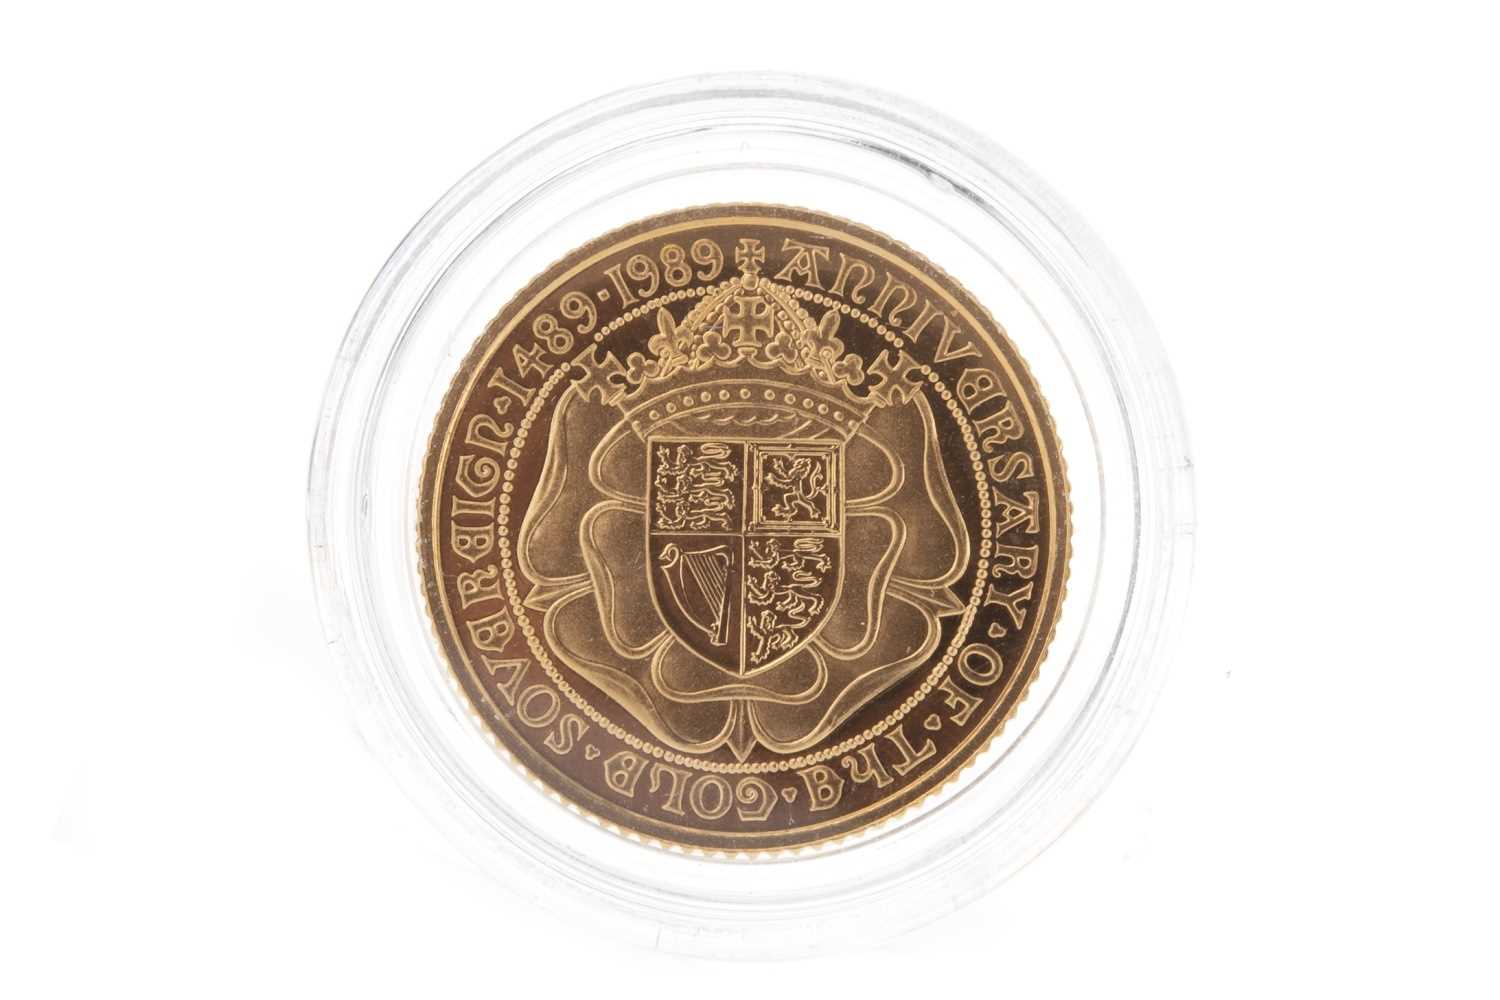 Lot 21-500 ANNIVERSARY GOLD HALF SOVEREIGN, 1989